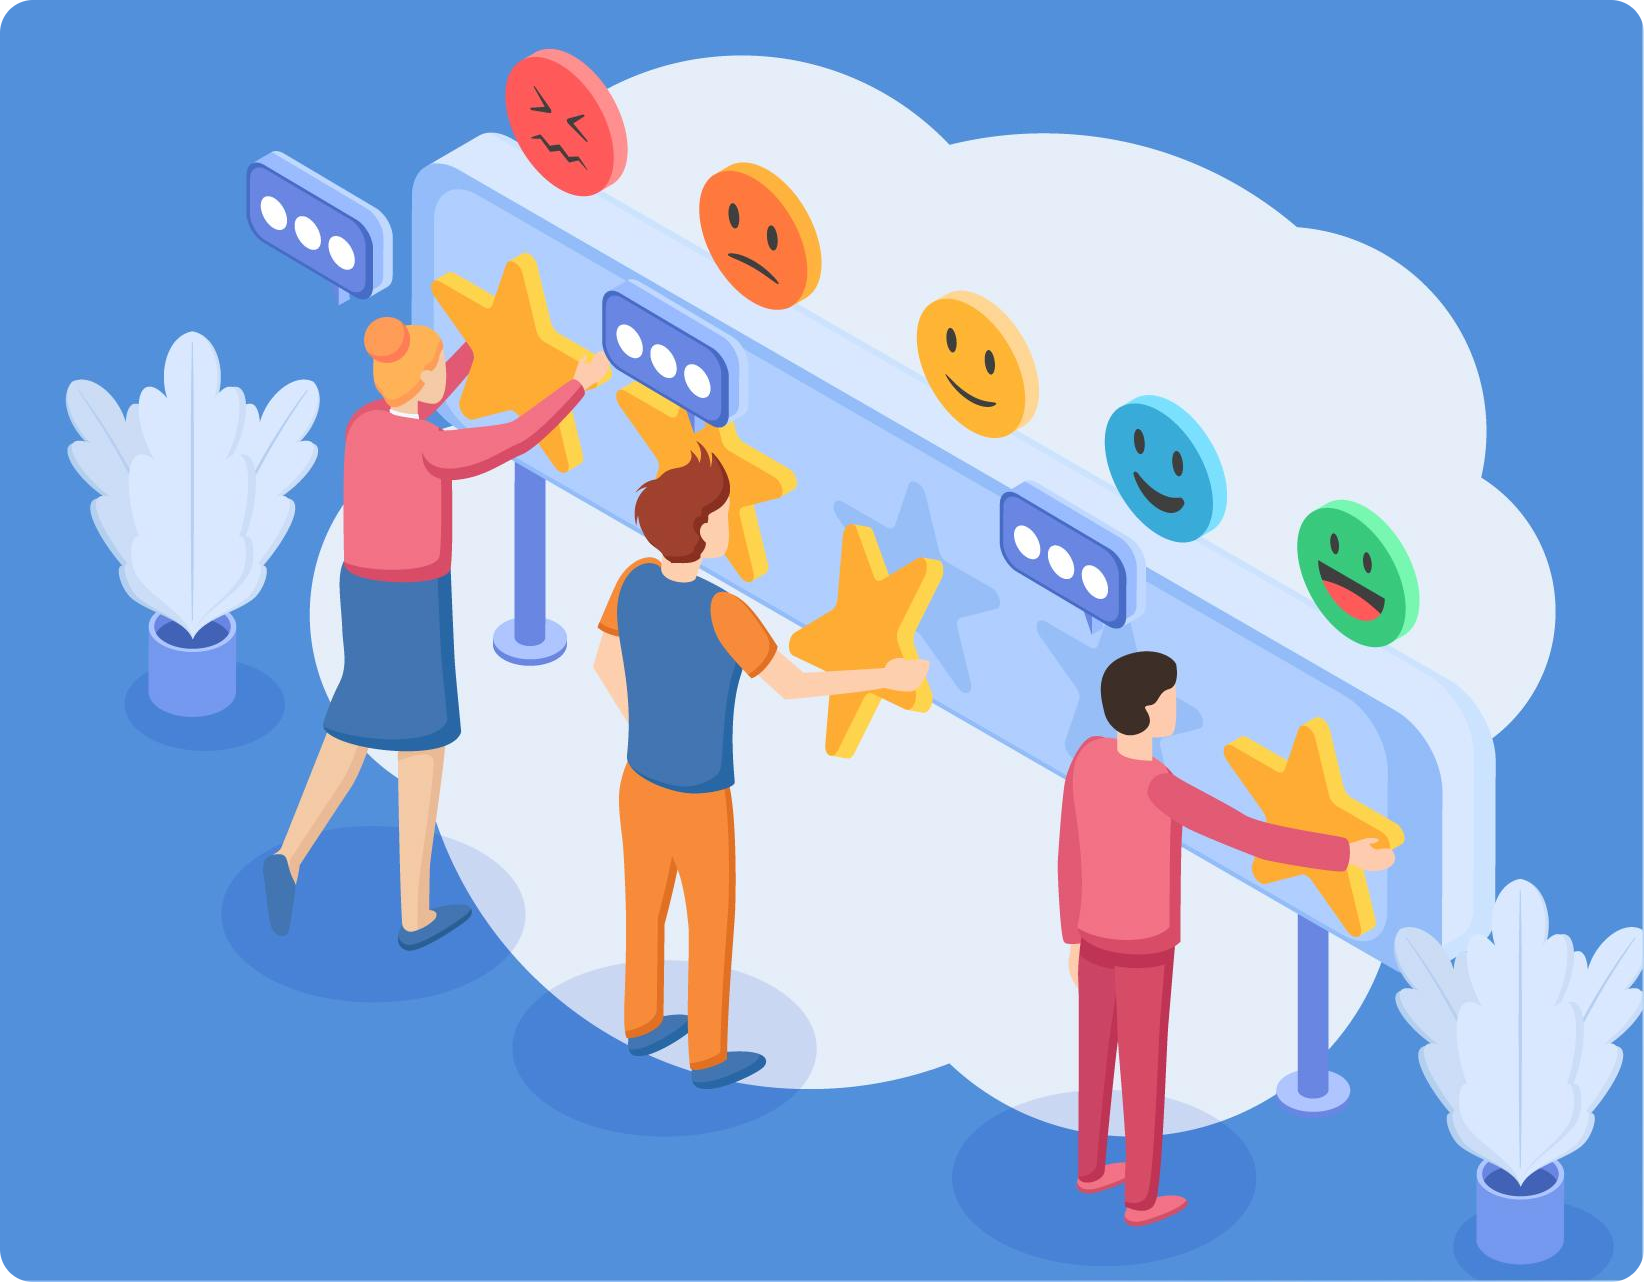 Stylized image of people rating a Shopify store on a billboard